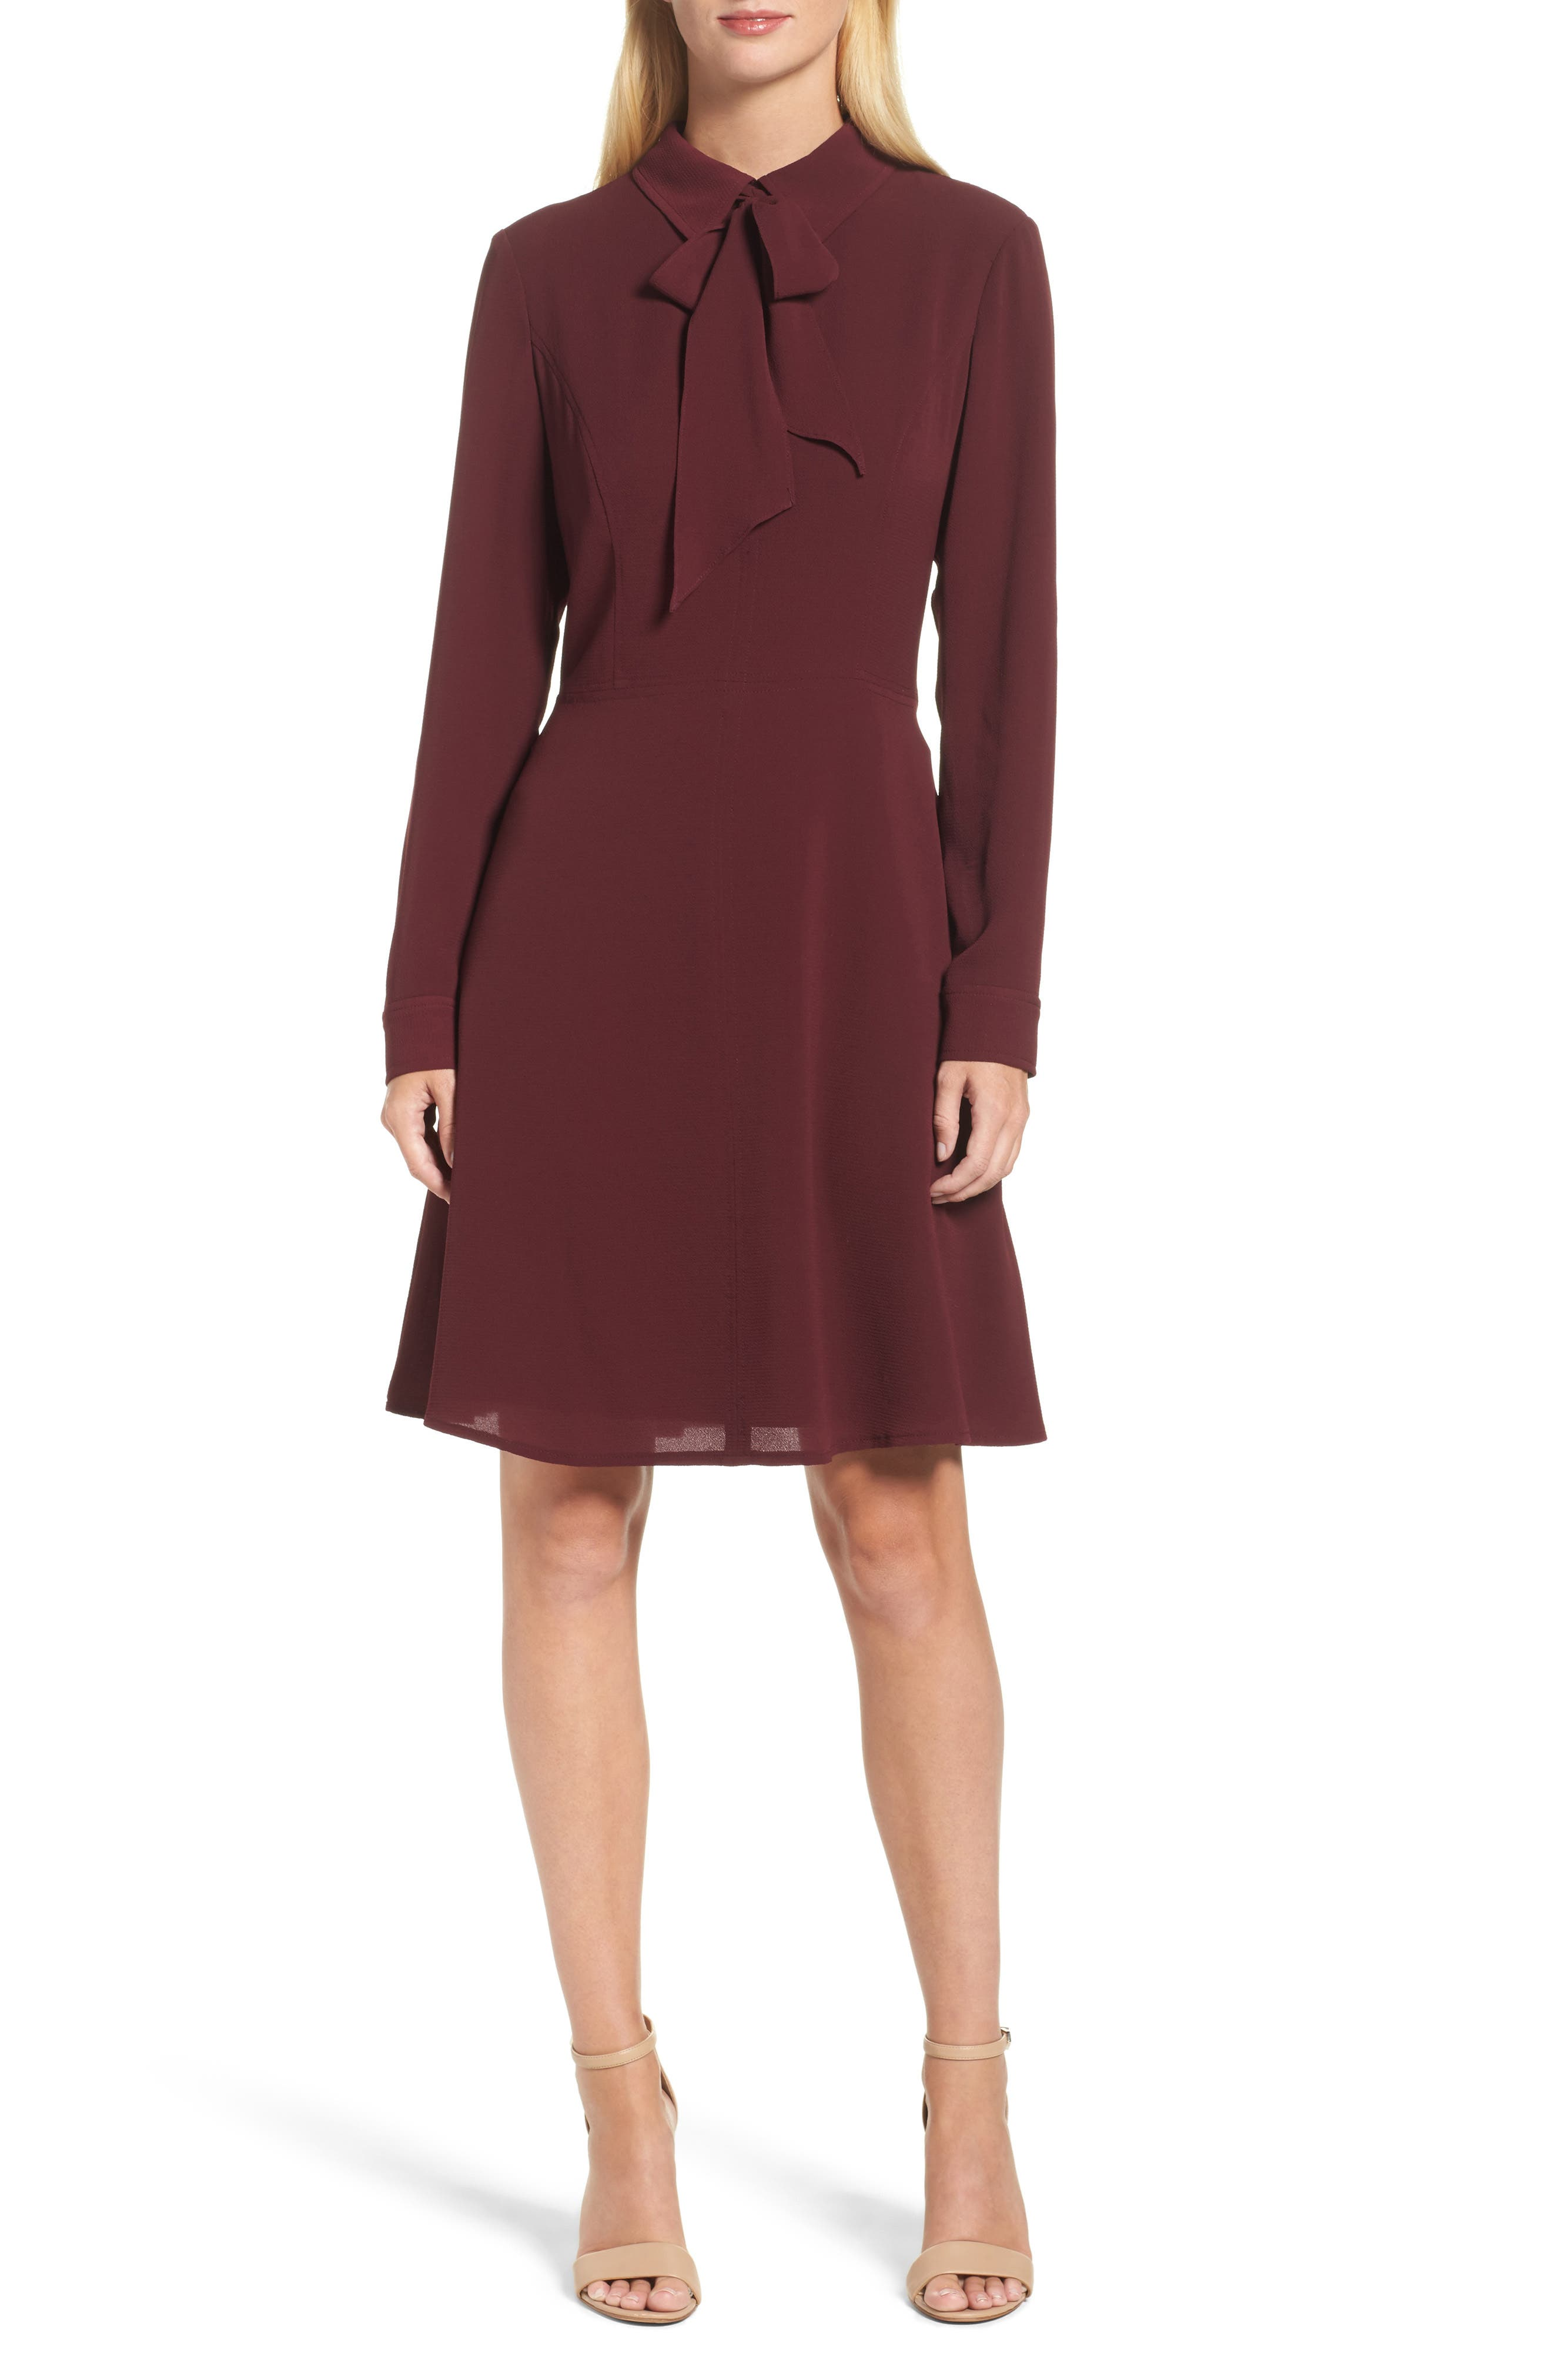 Main Image - Maggy London Crepe Bow Fit & Flare Dress (Regular & Petite)